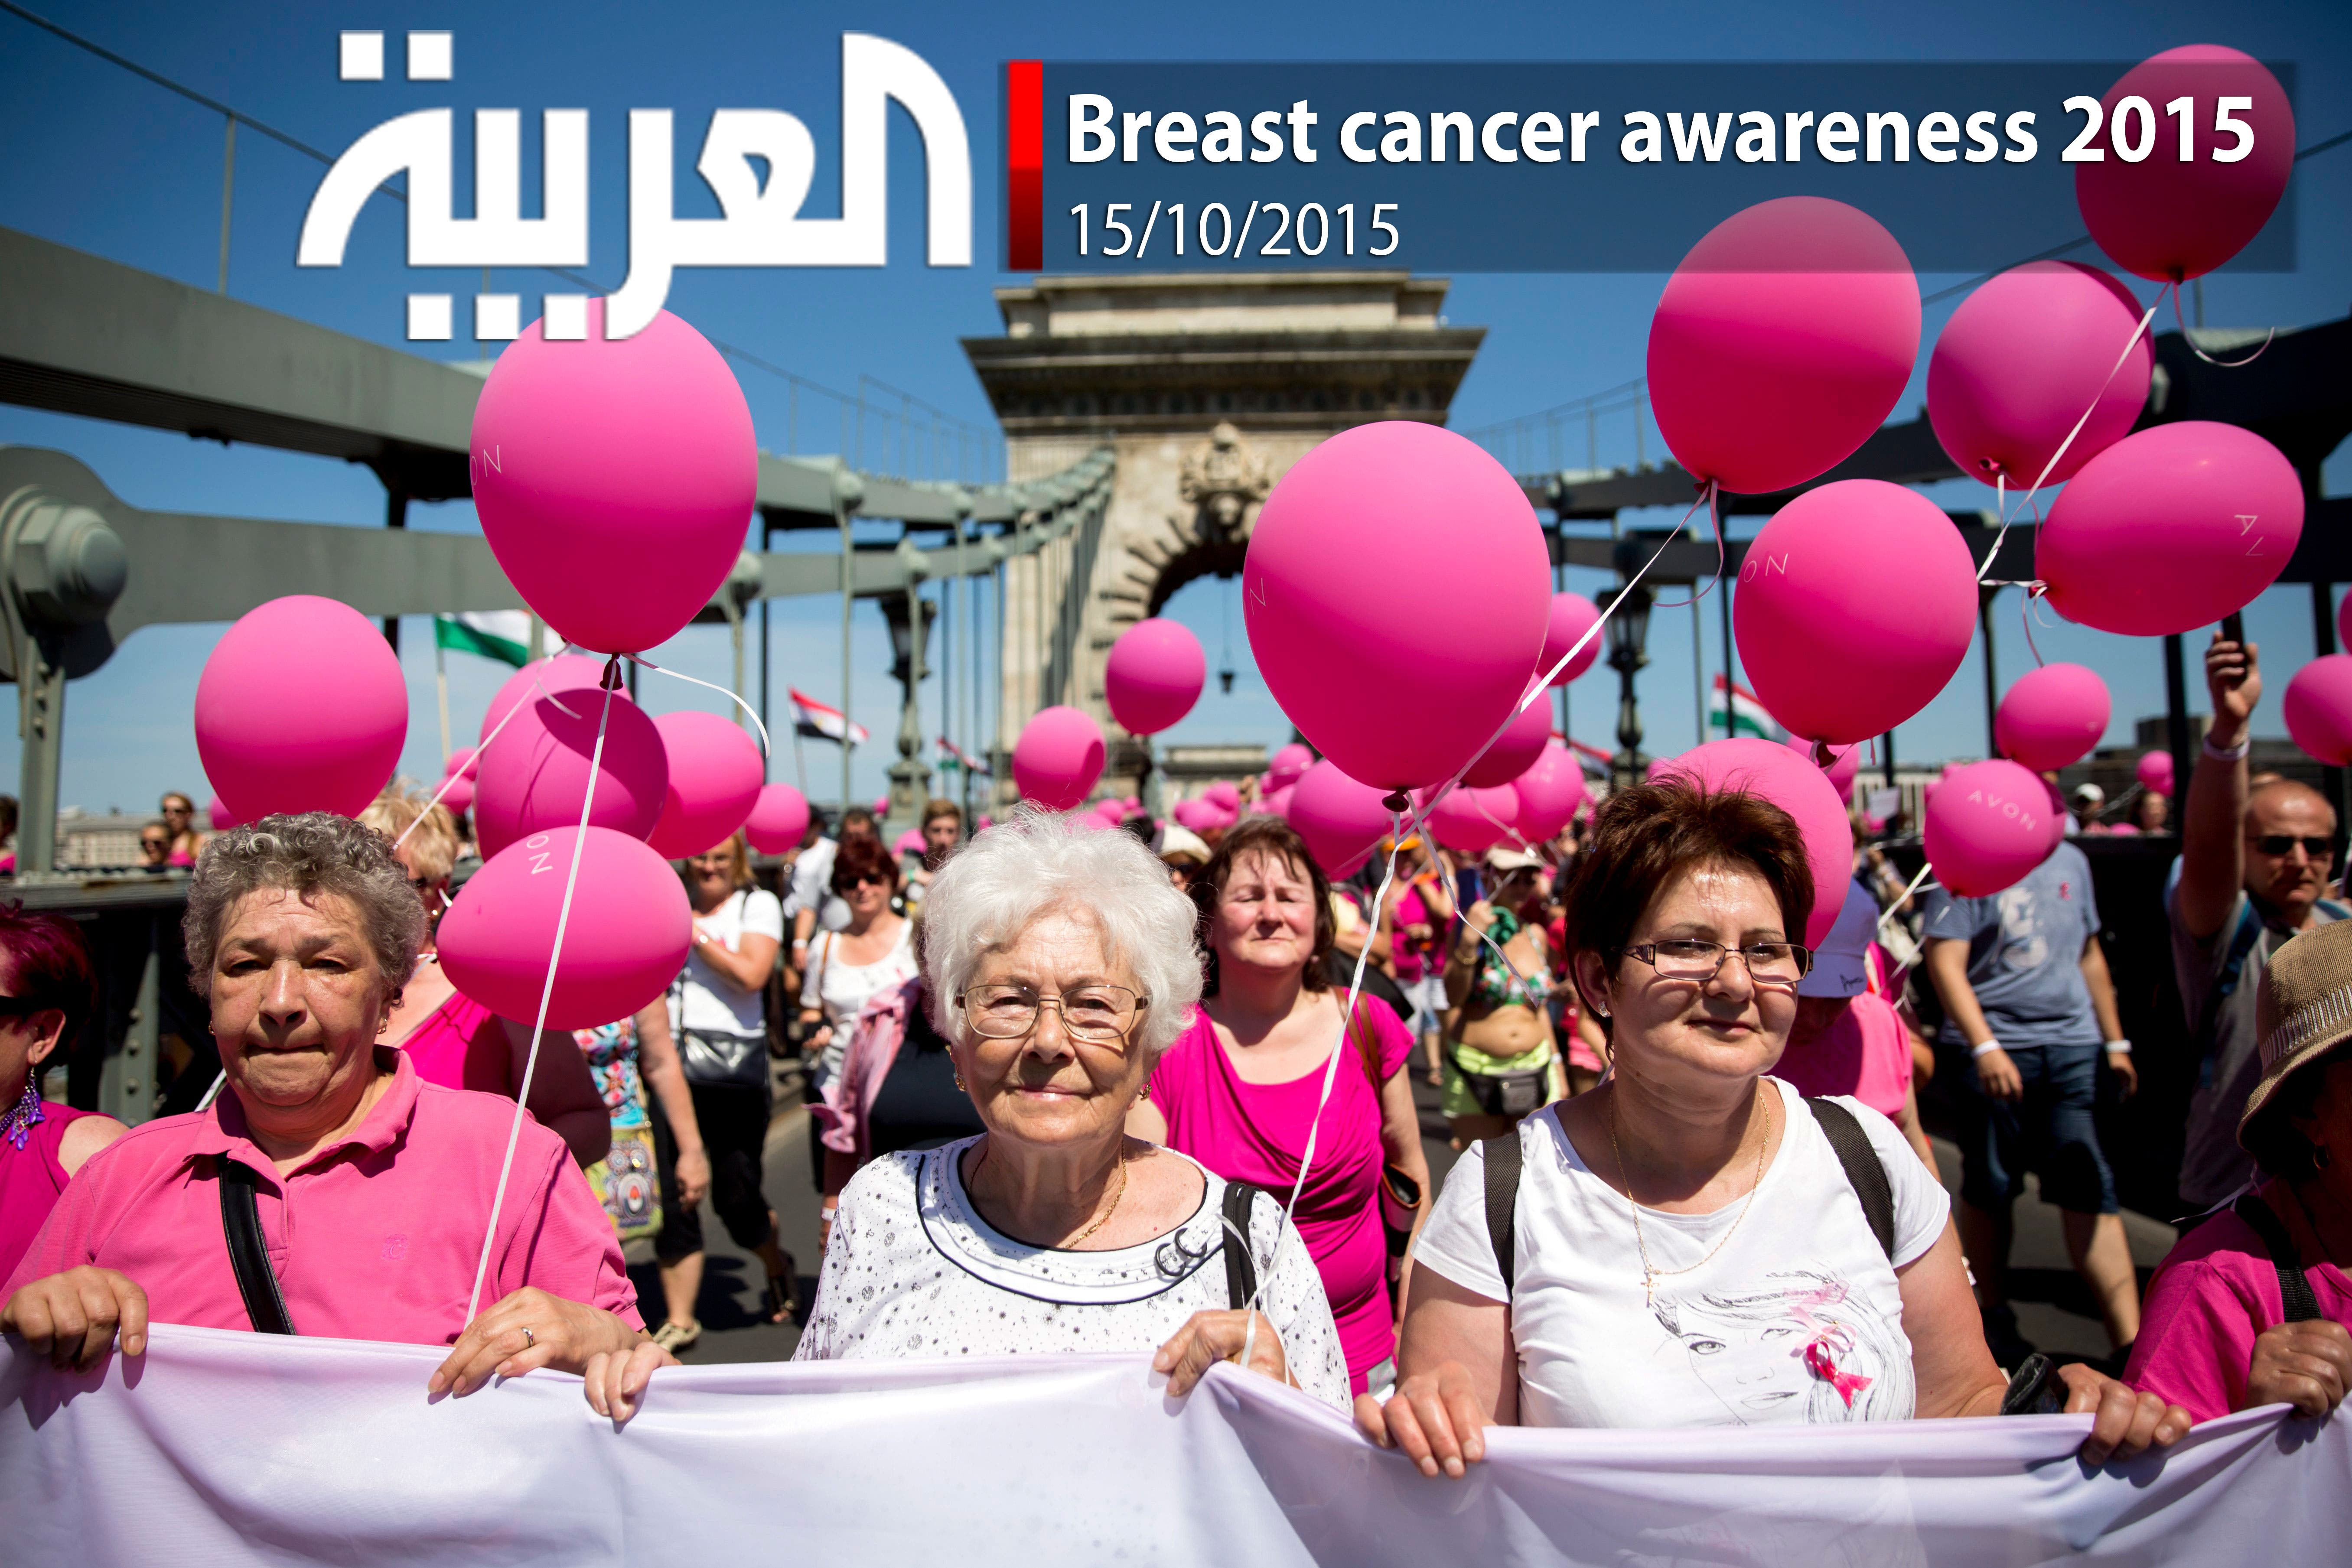 Breast cancer awareness 2015